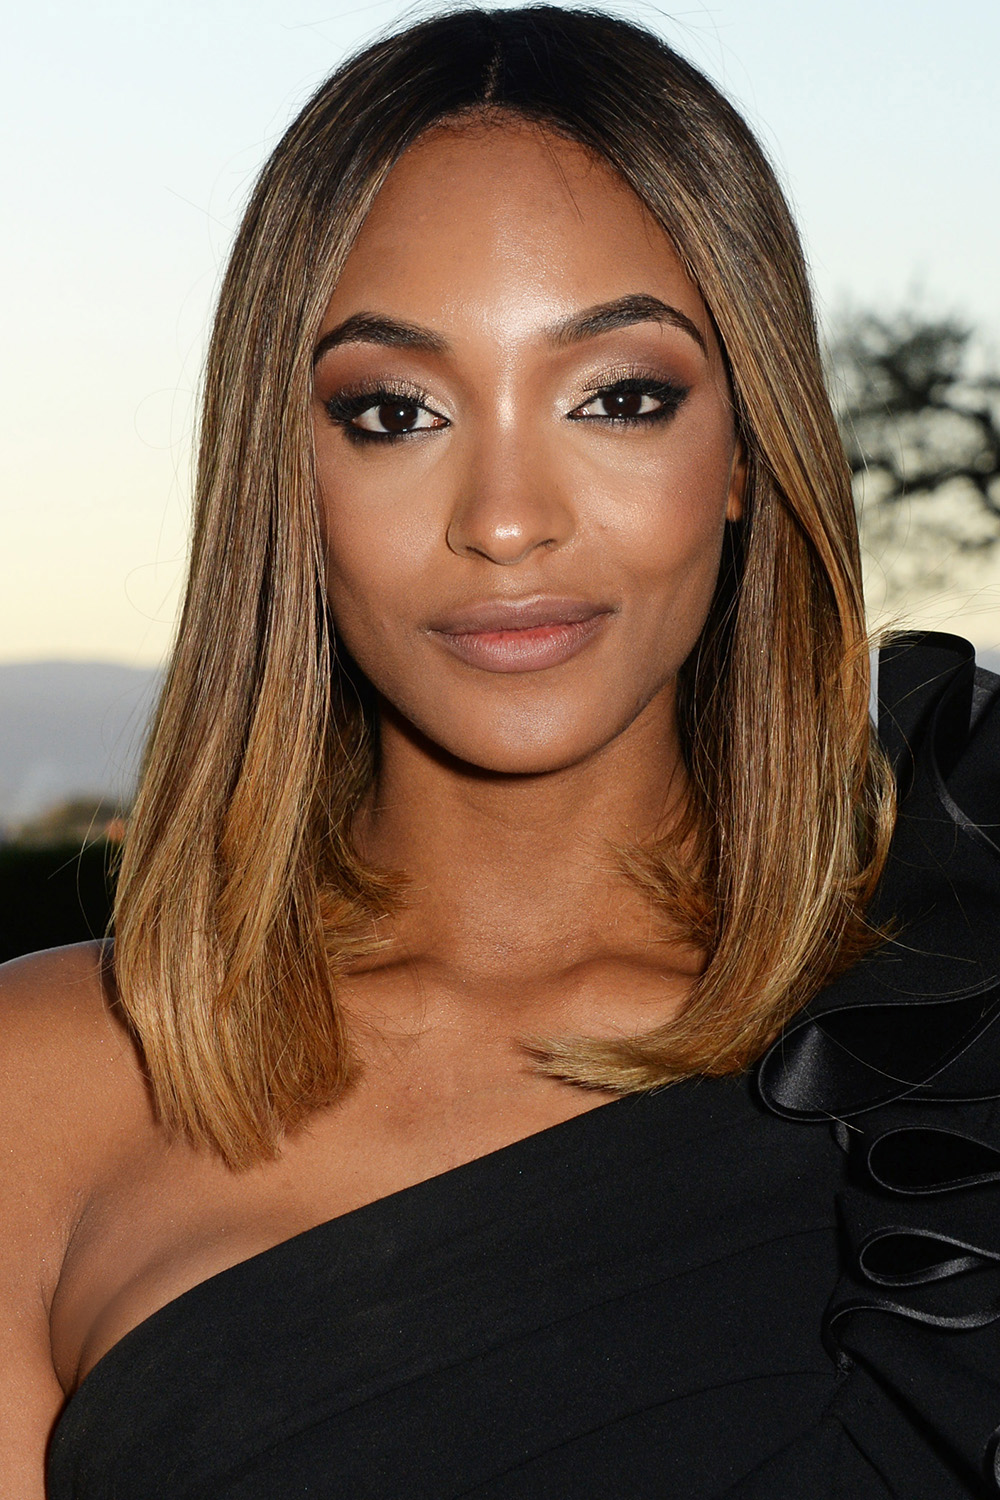 Superb 33 Best Medium Hairstyles Celebrities With Shoulder Length Haircuts Short Hairstyles For Black Women Fulllsitofus